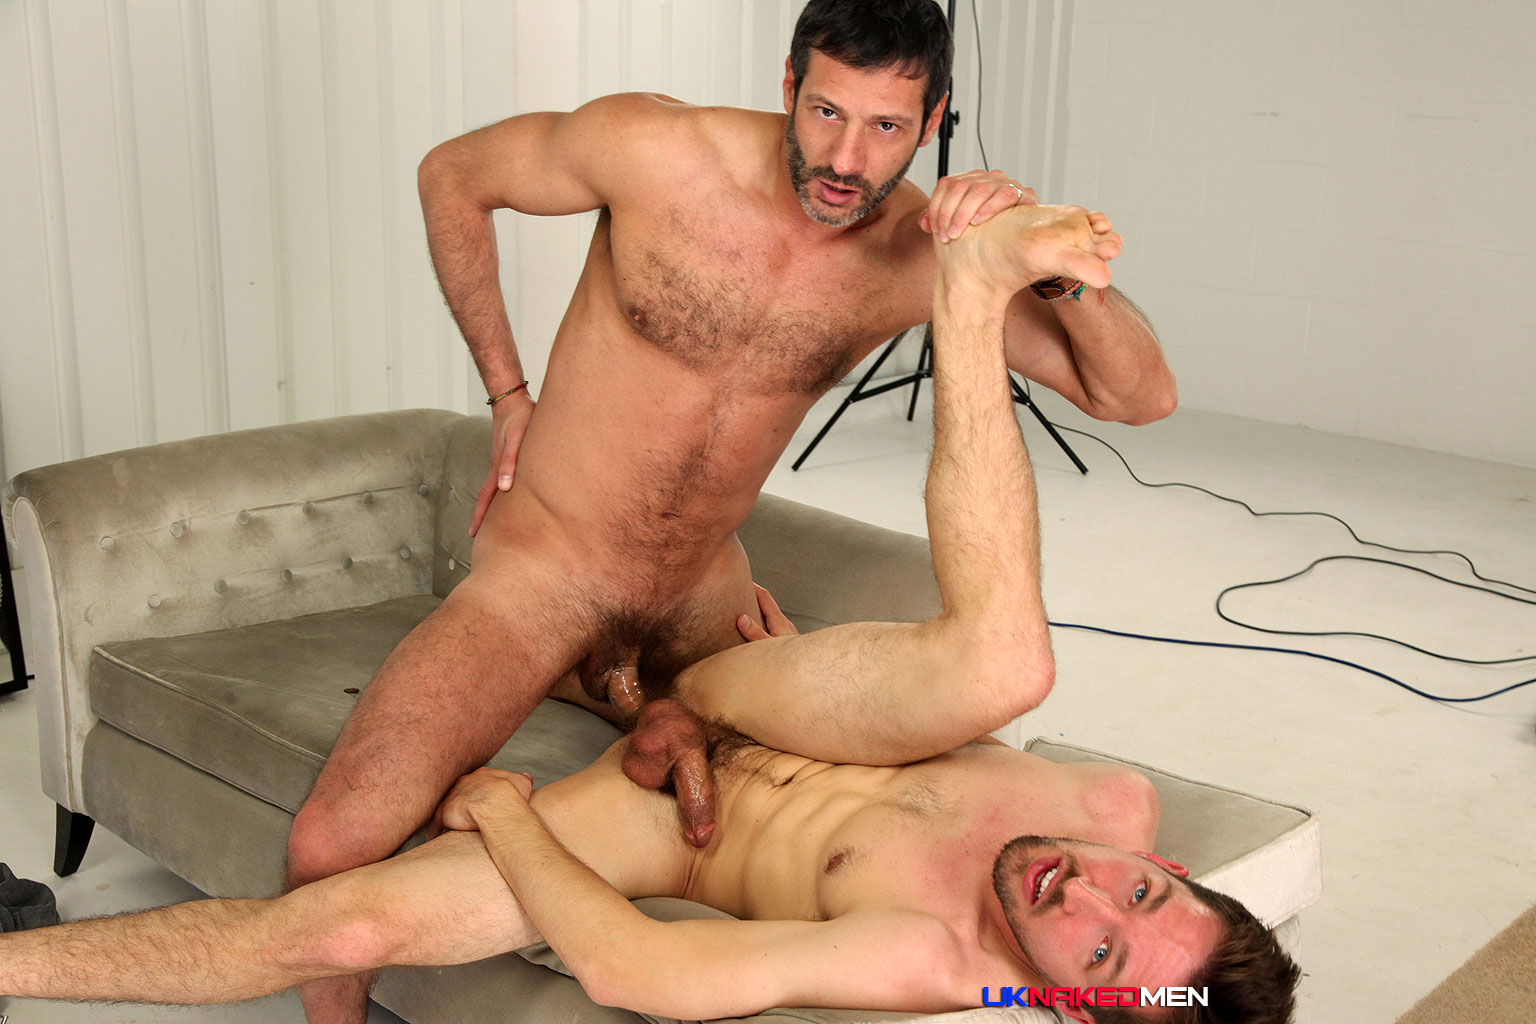 UK-Naked-Men-Antionio-Garcia-and-Jason-Stark-and-Valentin-Alsina-Huge-Cock-Fucking-Amateur-Gay-Porn-11 Peeping Tom Watches Two Masculine Uncut Guys Fucking